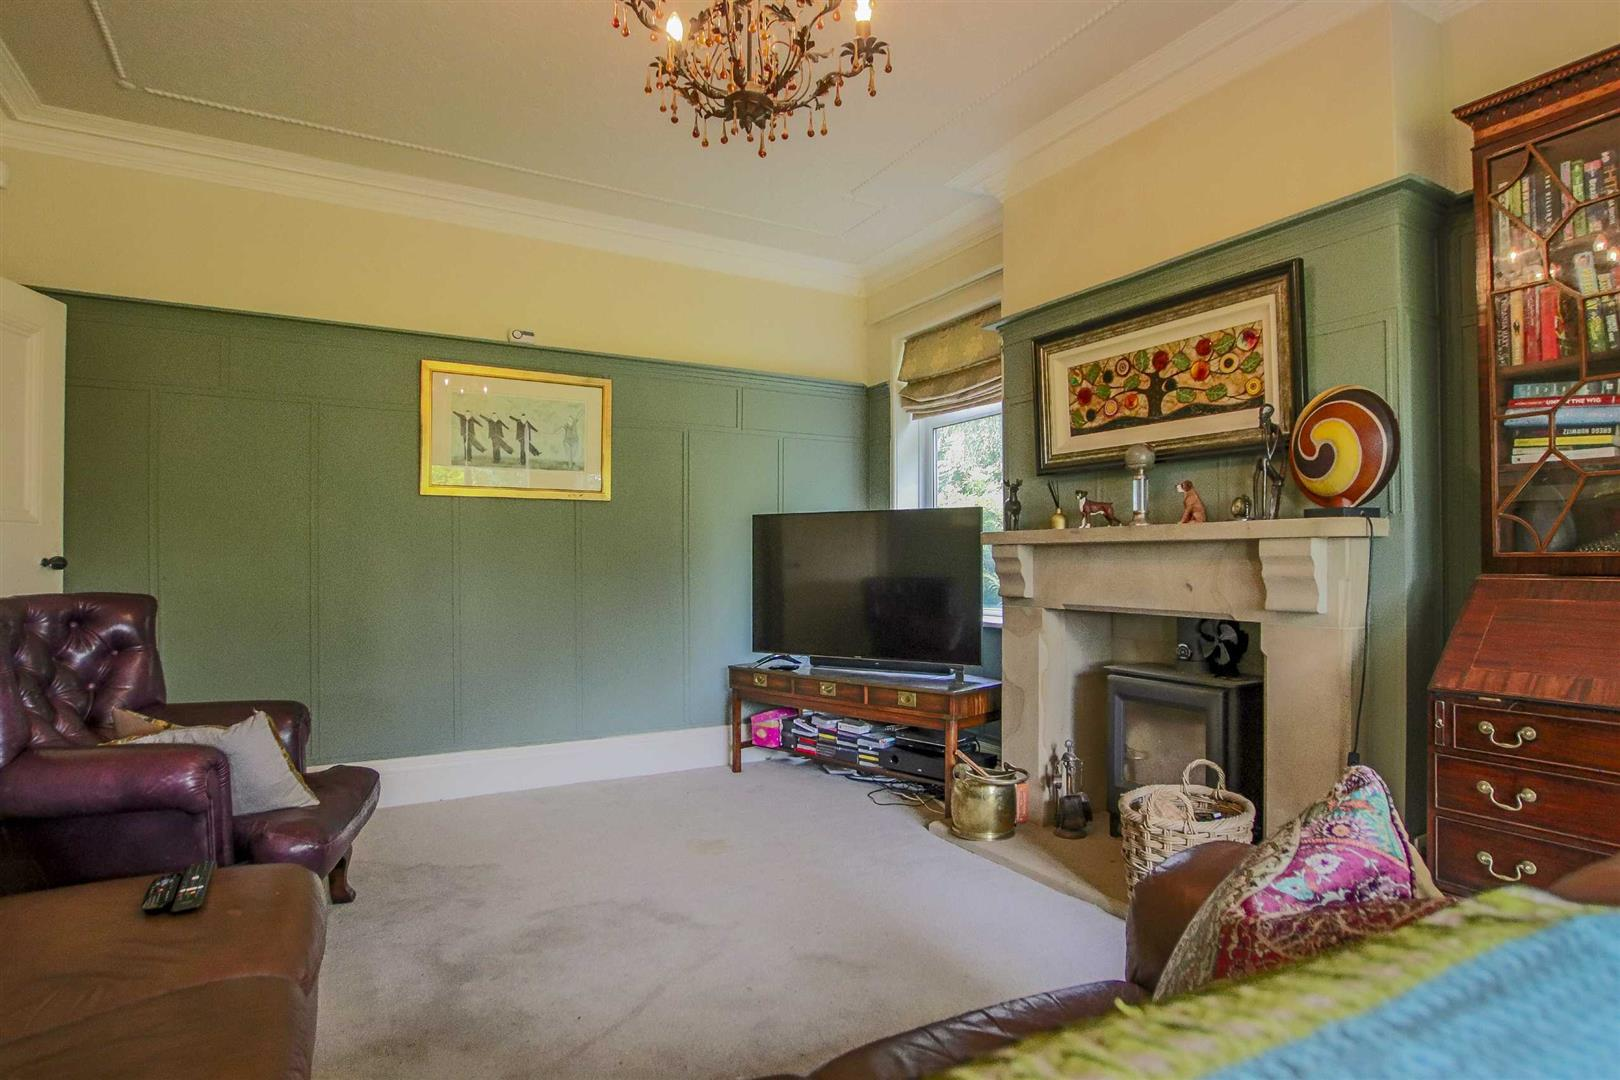 4 Bedroom Detached House For Sale - Image 19